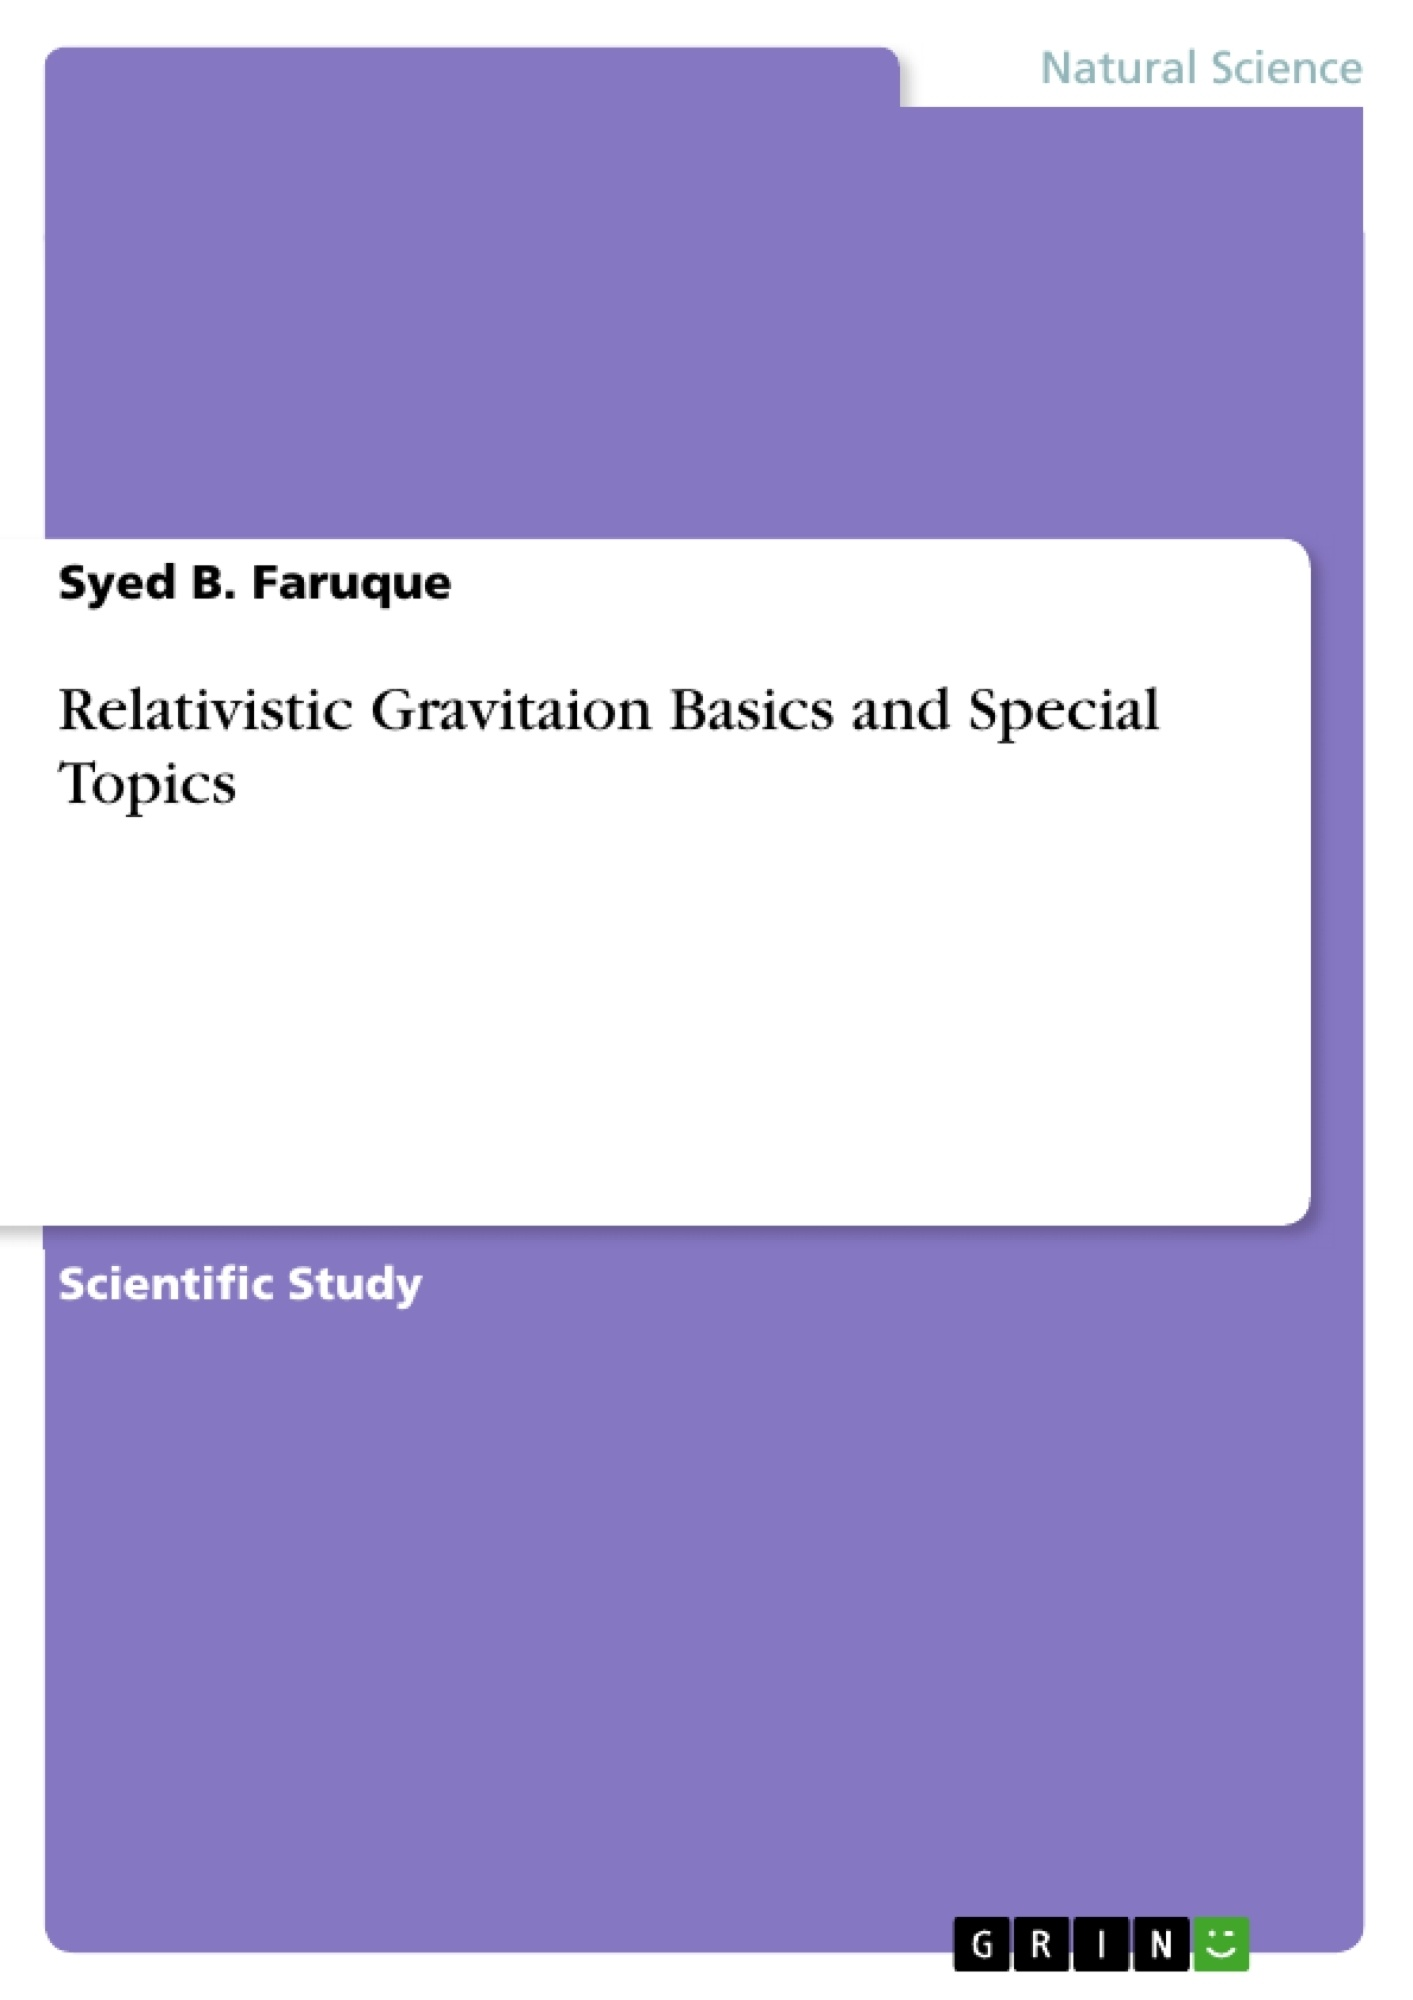 Title: Relativistic Gravitaion Basics and Special Topics